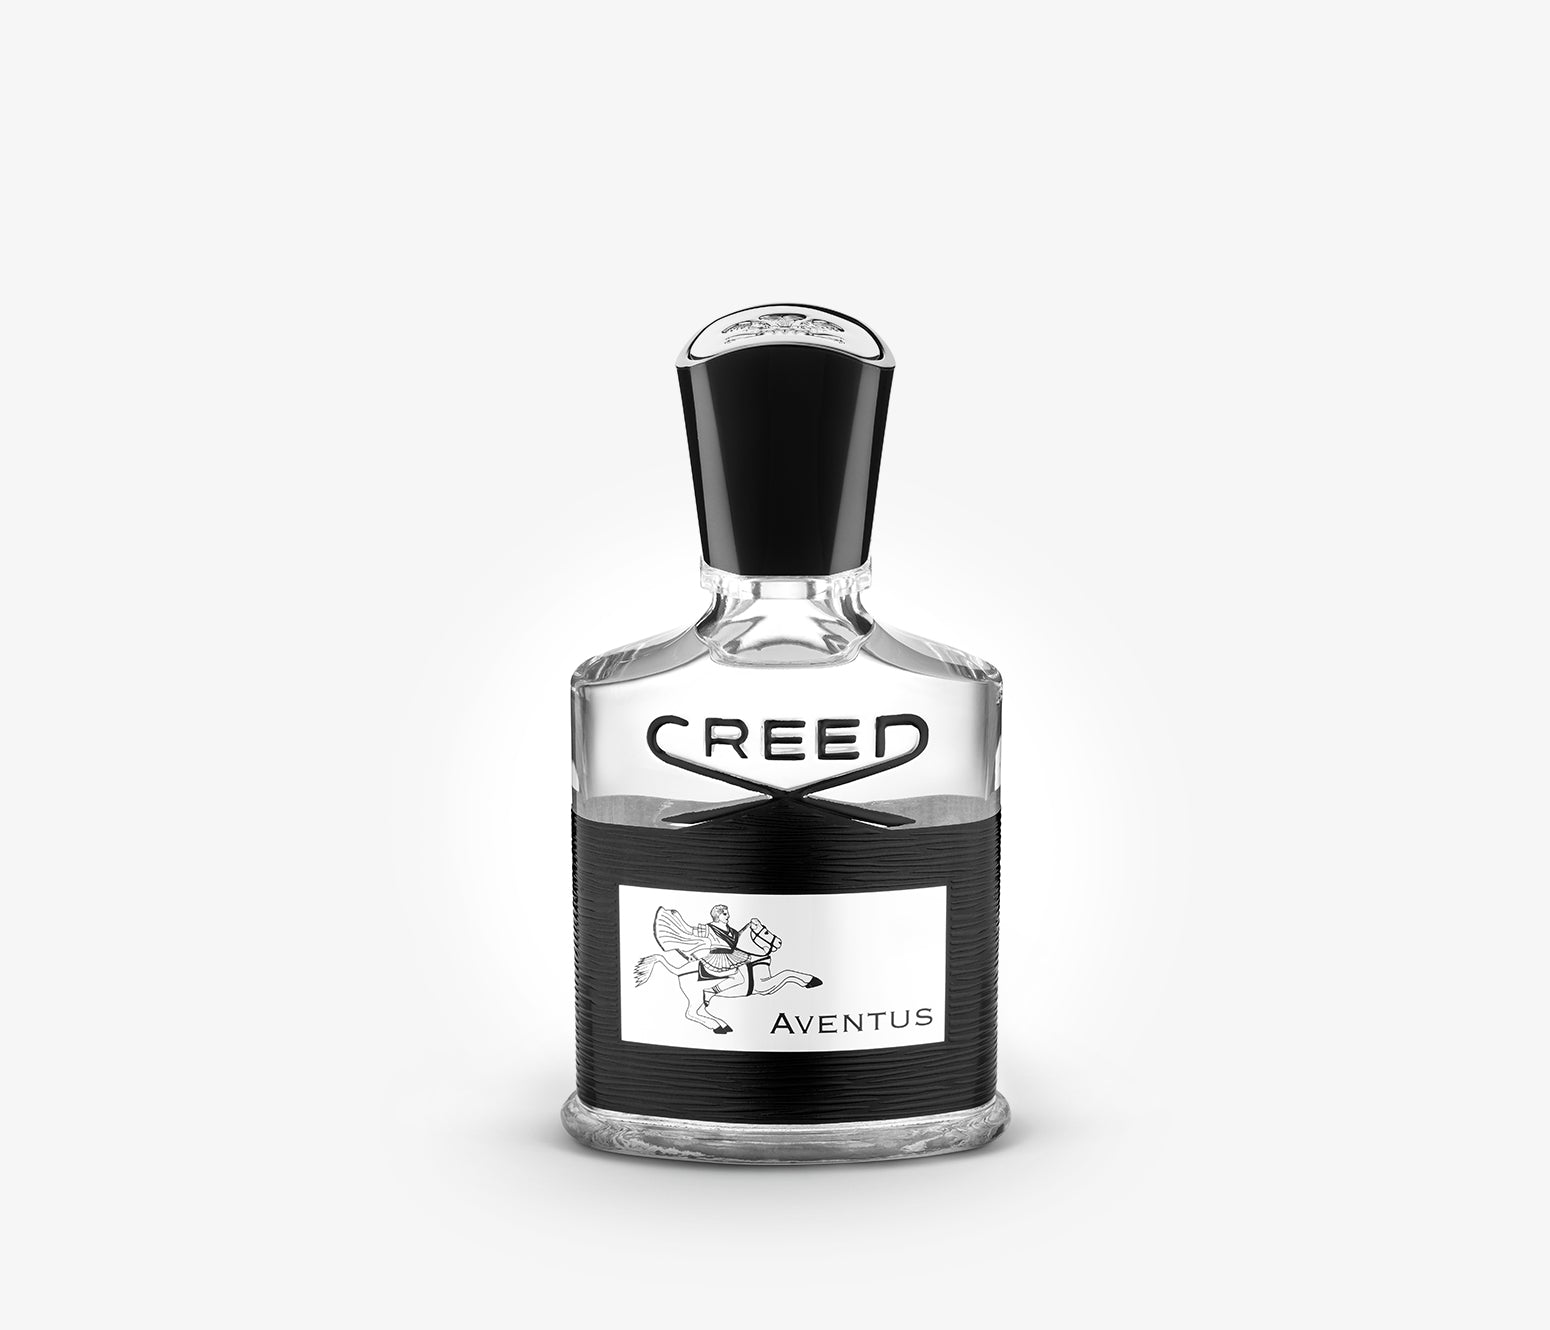 Creed - Aventus - 50ml - WMS001 - Product Image - Fragrance - Les Senteurs